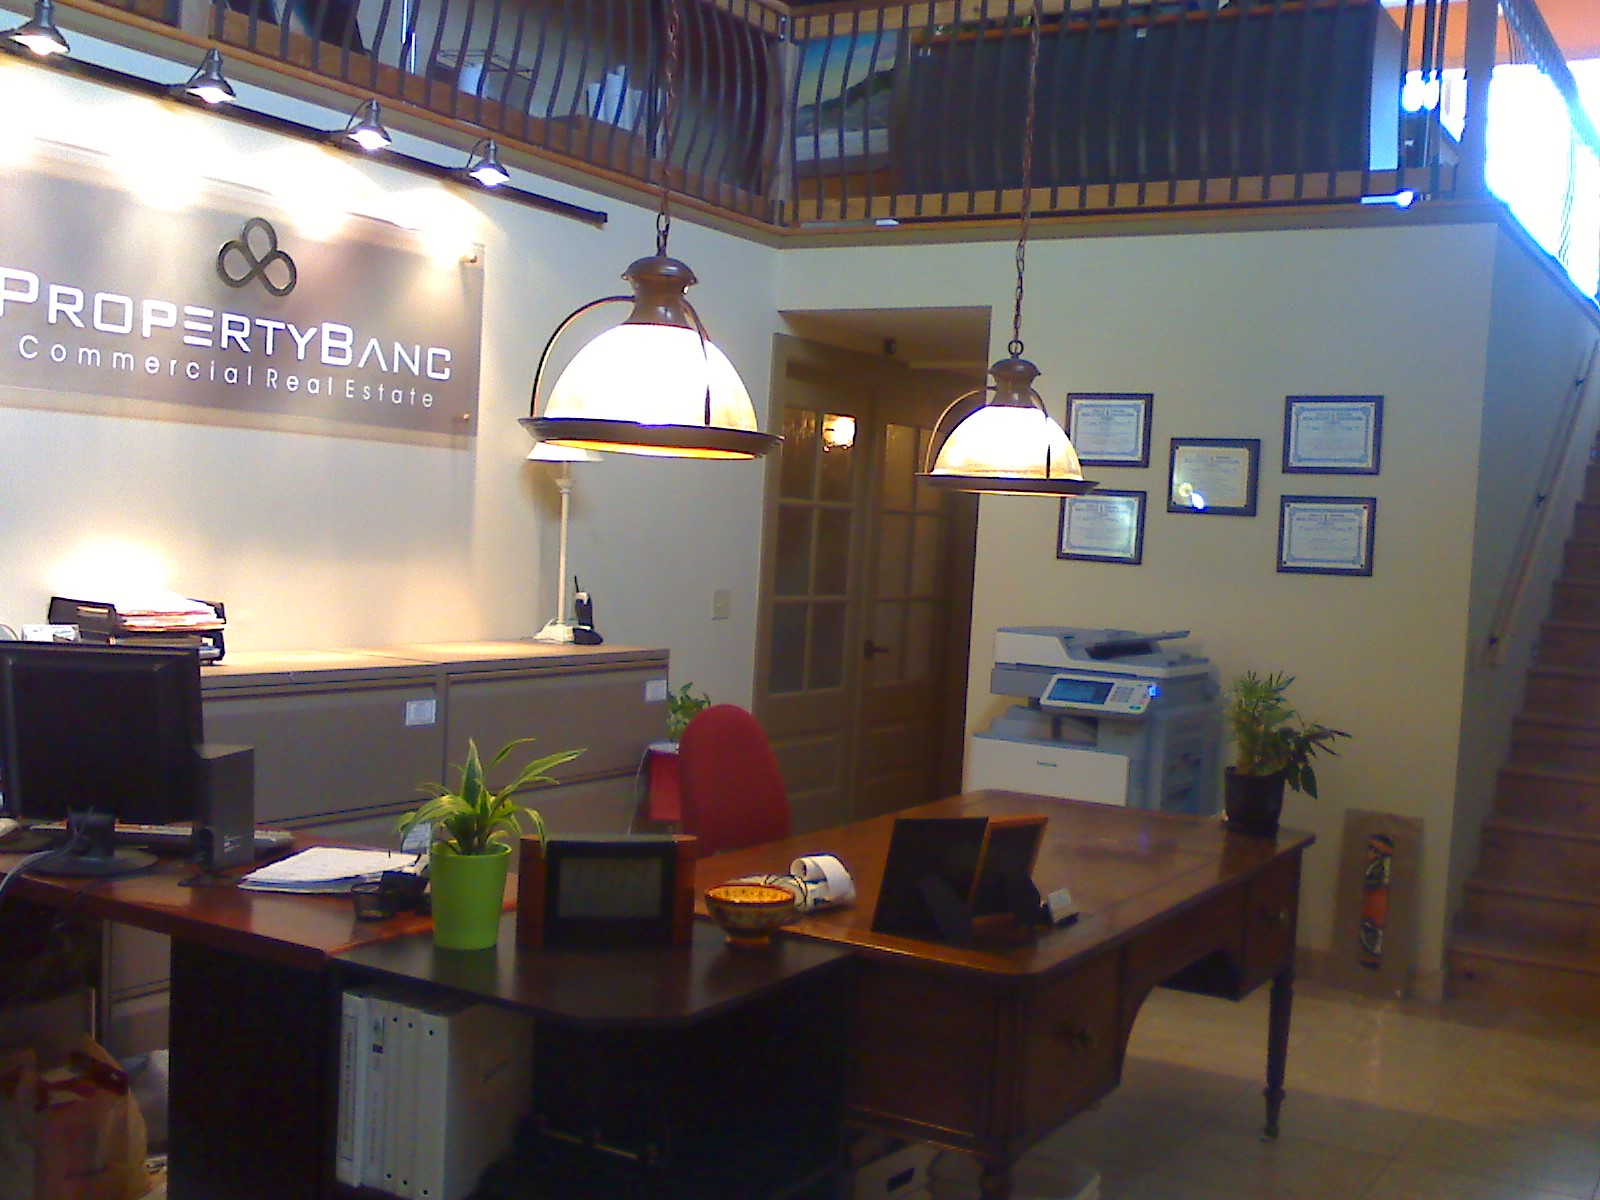 Office area with loft